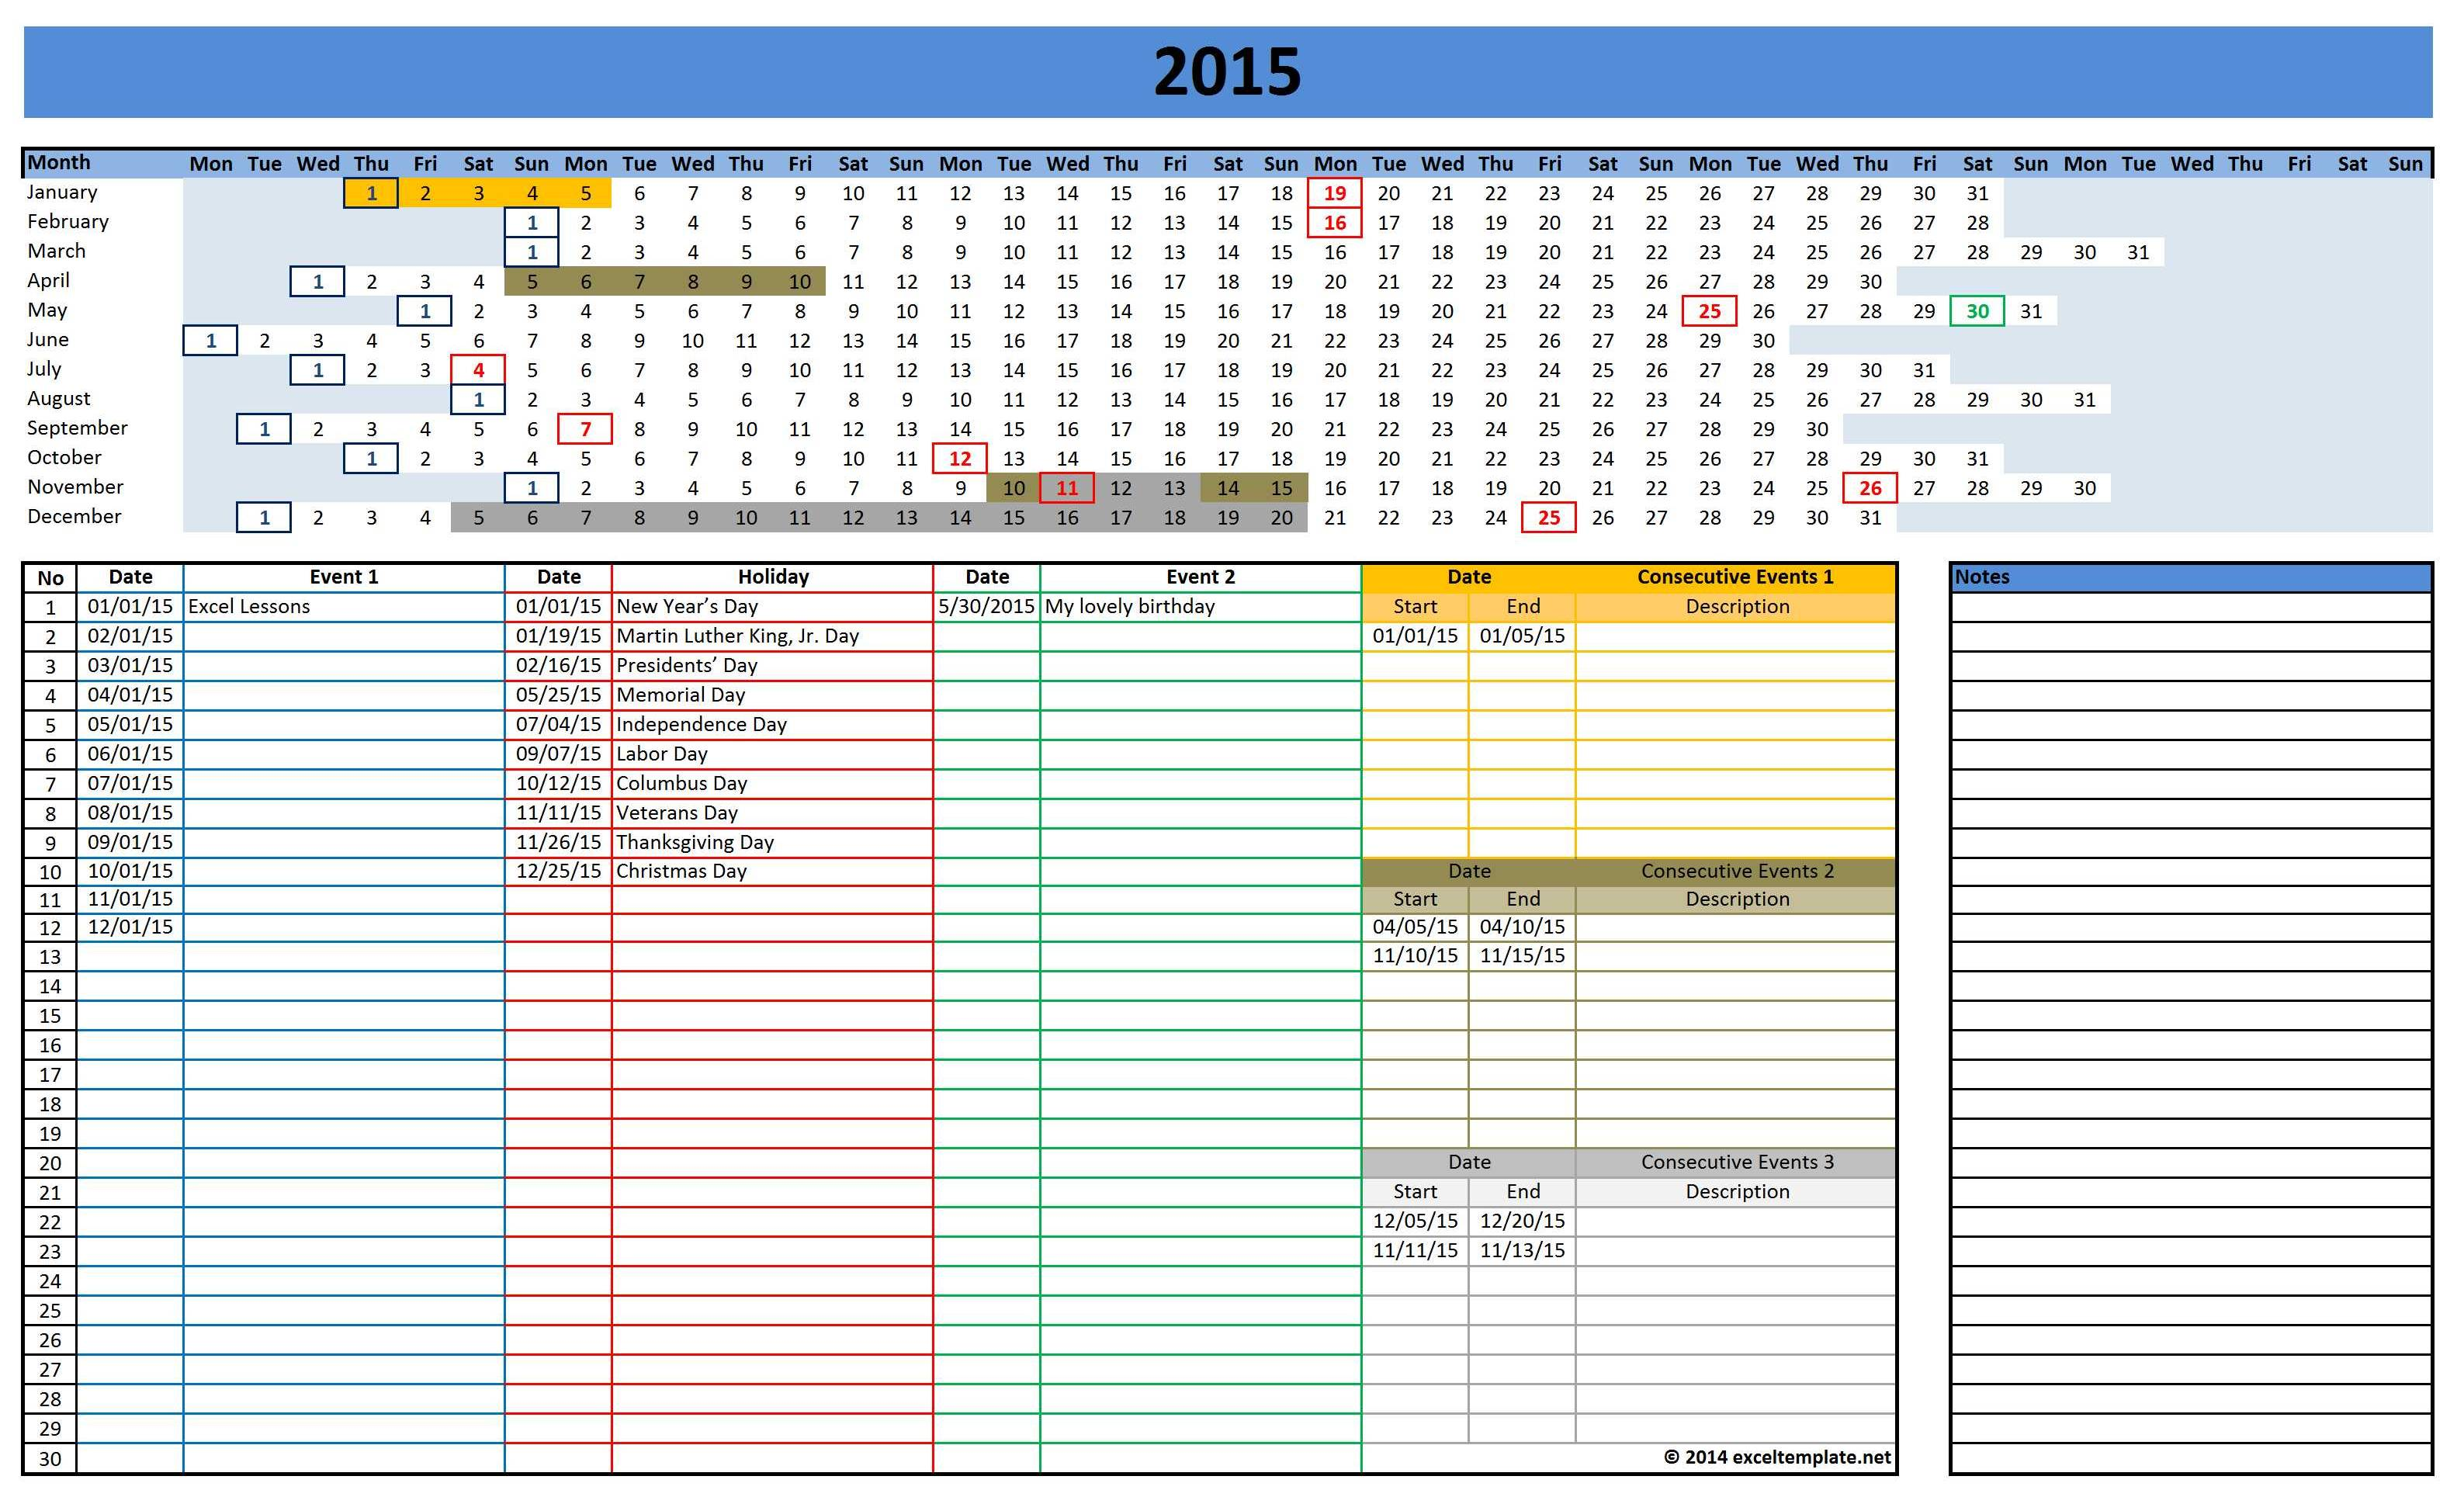 Monthly Class Attendance Sheet Template – Sample 2015 Calendar